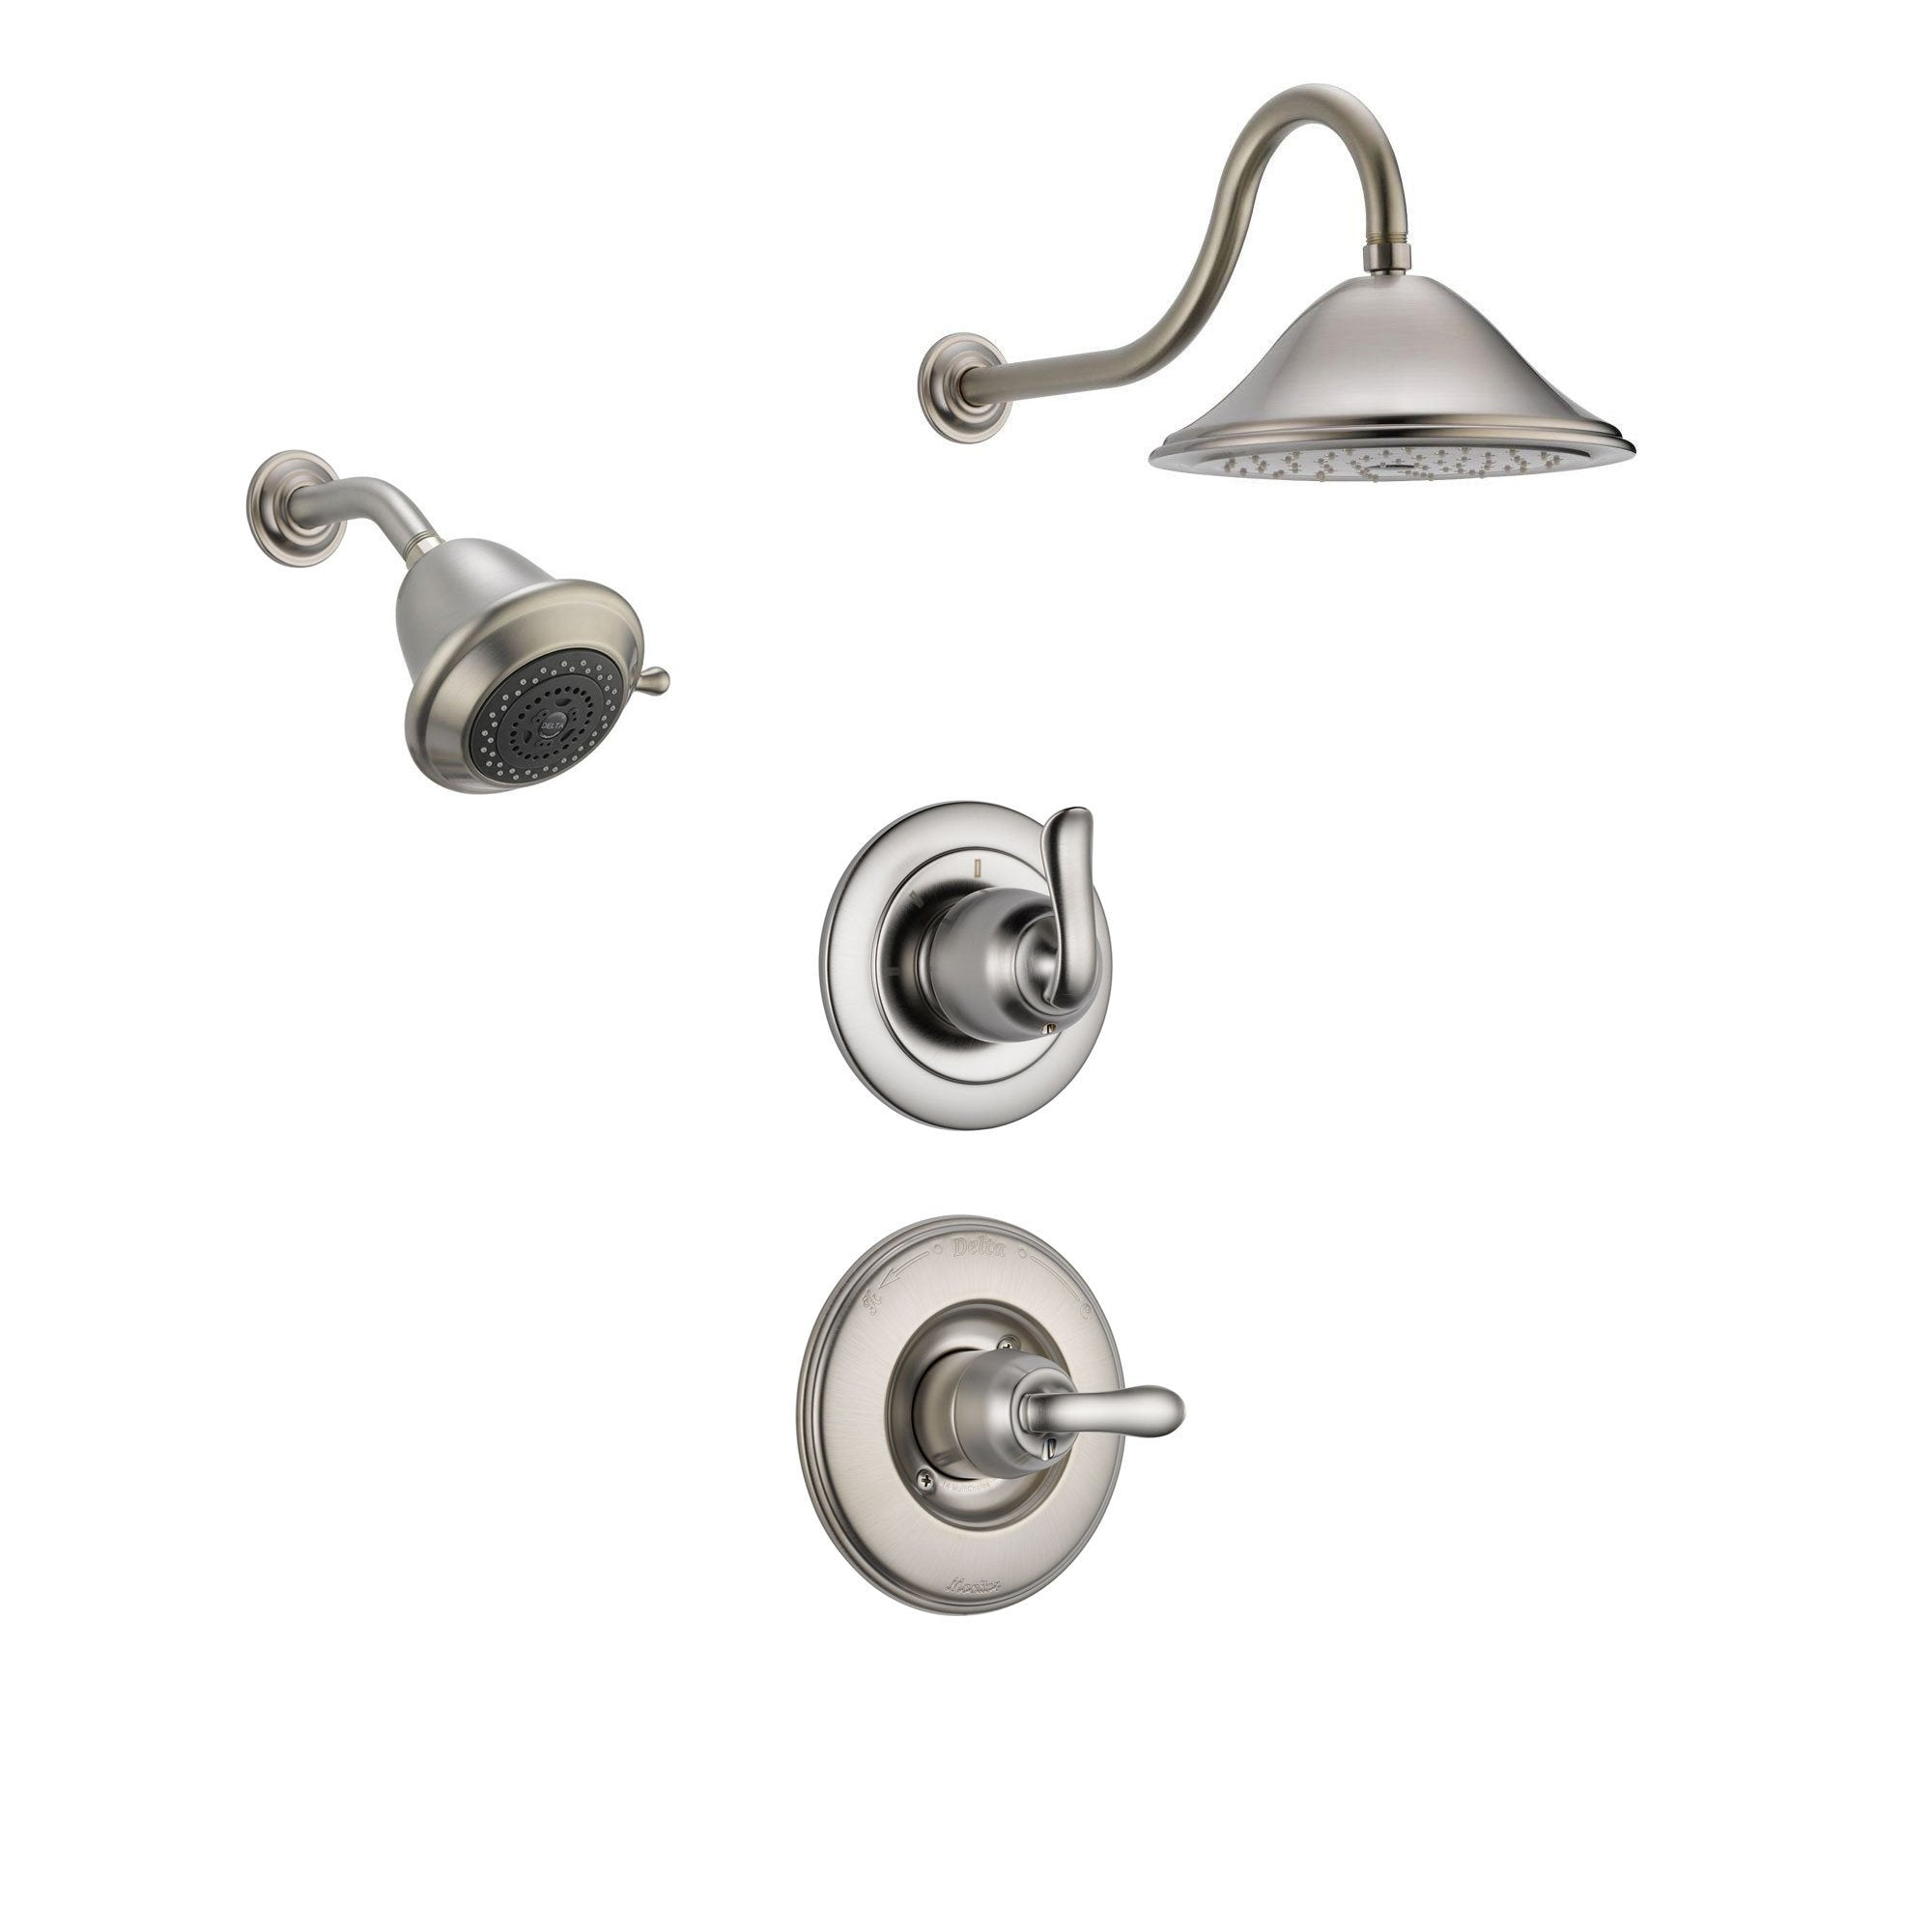 Delta Linden Stainless Steel Shower System with Normal Shower Handle, 3-setting Diverter, Large Rain Showerhead, and Smaller Wall Mount Showerhead SS149485SS